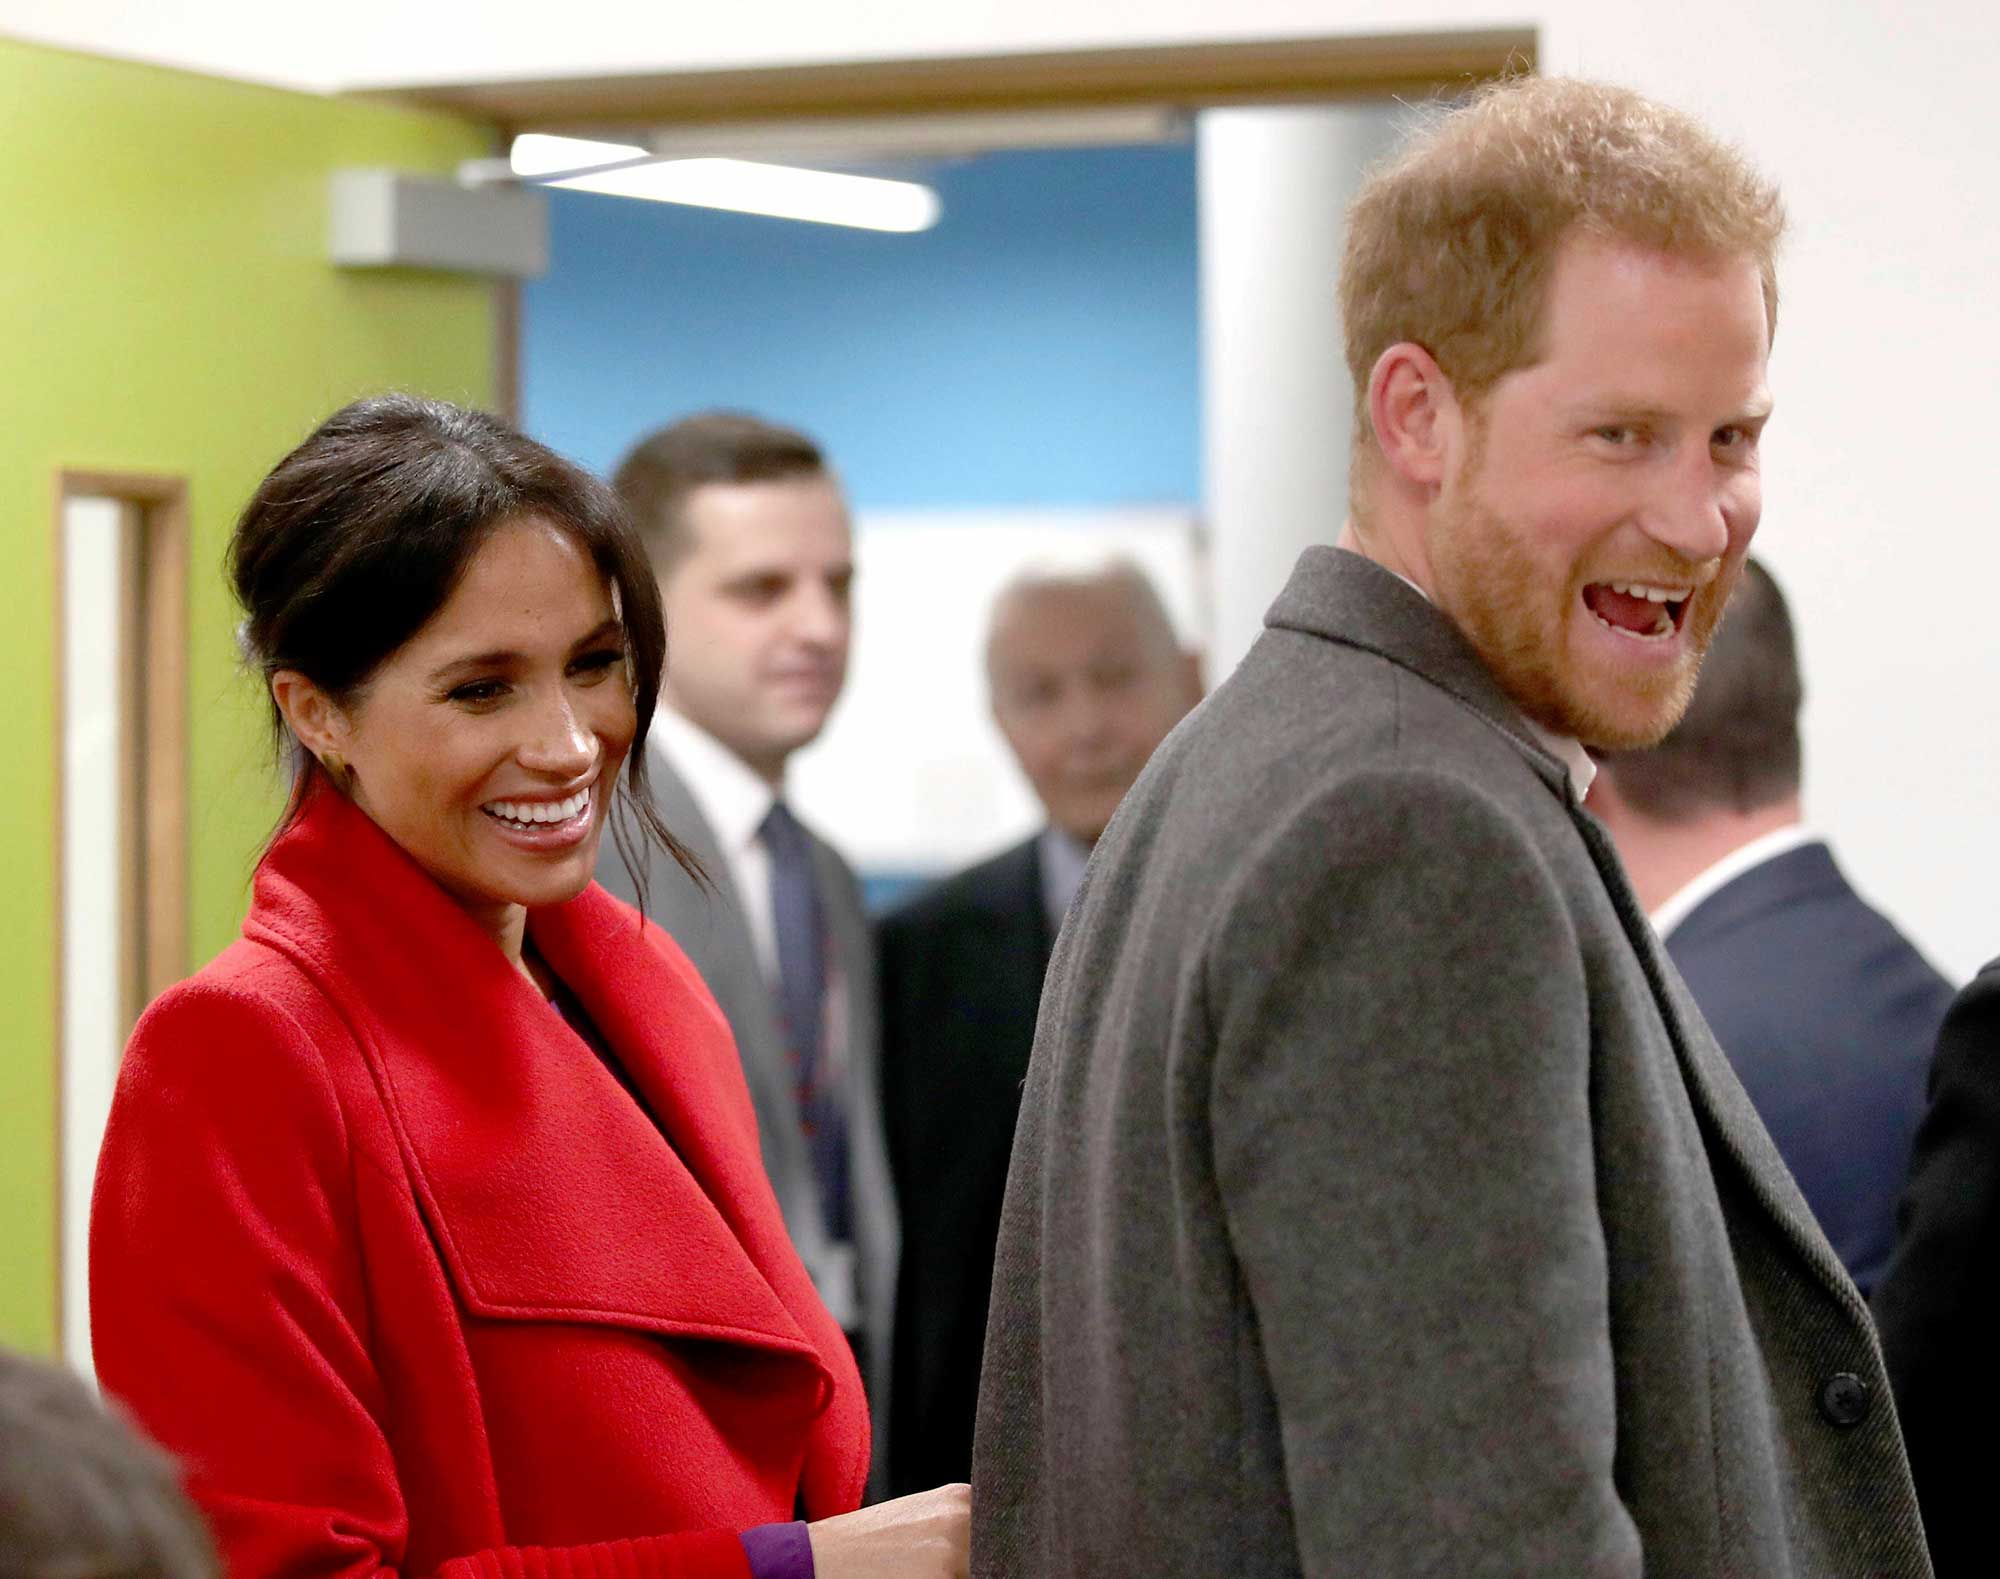 "<div class=""meta image-caption""><div class=""origin-logo origin-image none""><span>none</span></div><span class=""caption-text"">The Duke and Duchess of Sussex at the Hive, Wirral Youth Zone as part of a visit to Birkenhead. (Danny Lawson/PA Wire via AP)</span></div>"